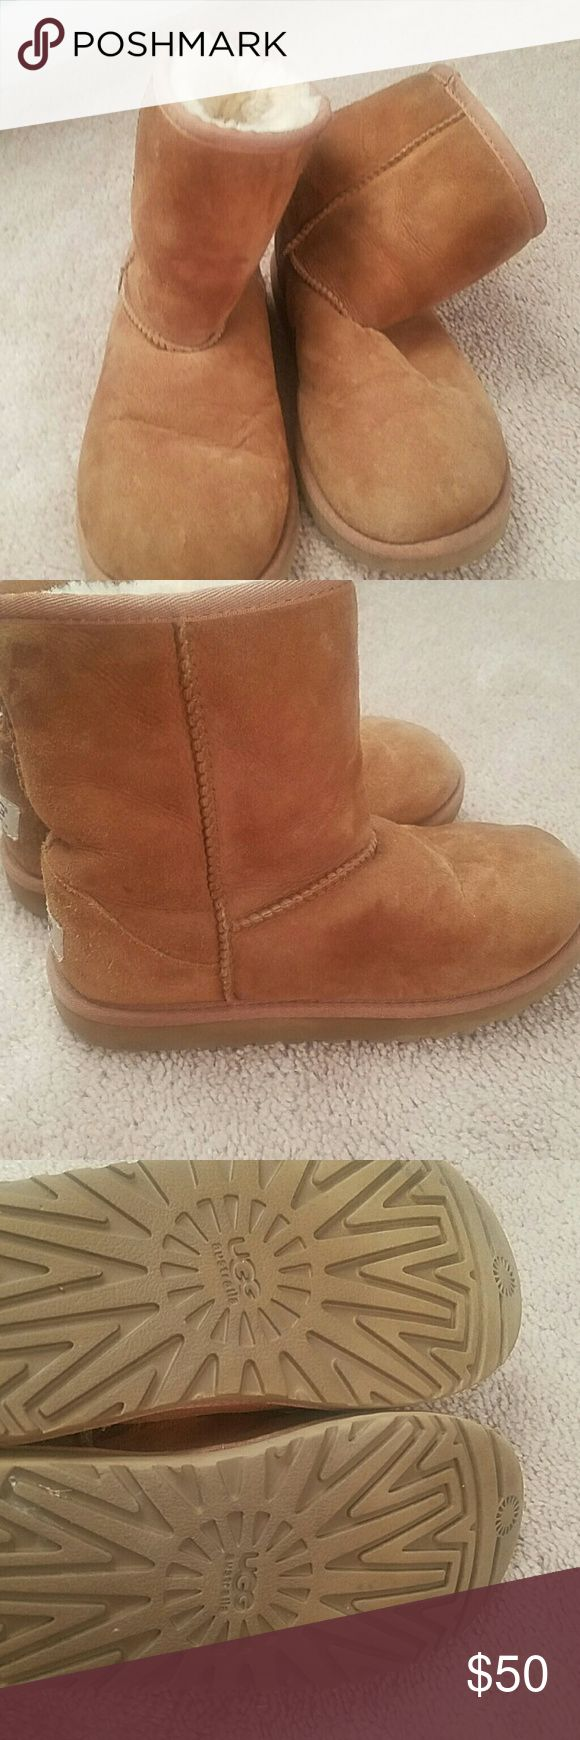 Uggs classic short Size 3 uggs. Gently used. Chestnut color UGG Shoes Ankle Boots & Booties